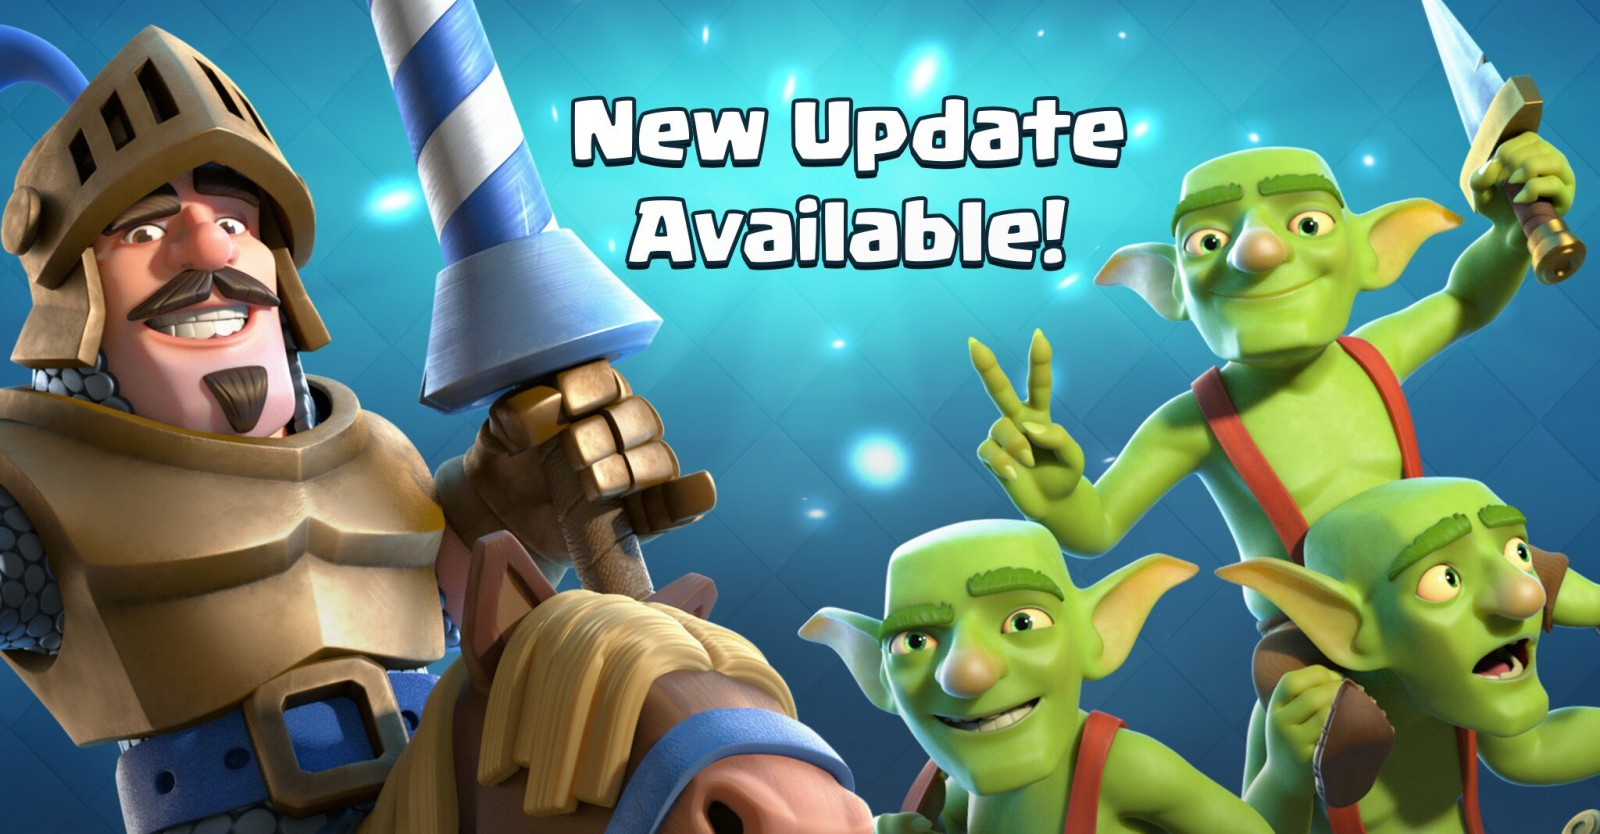 serious update of Clash Royale, preparing the game for a global ...